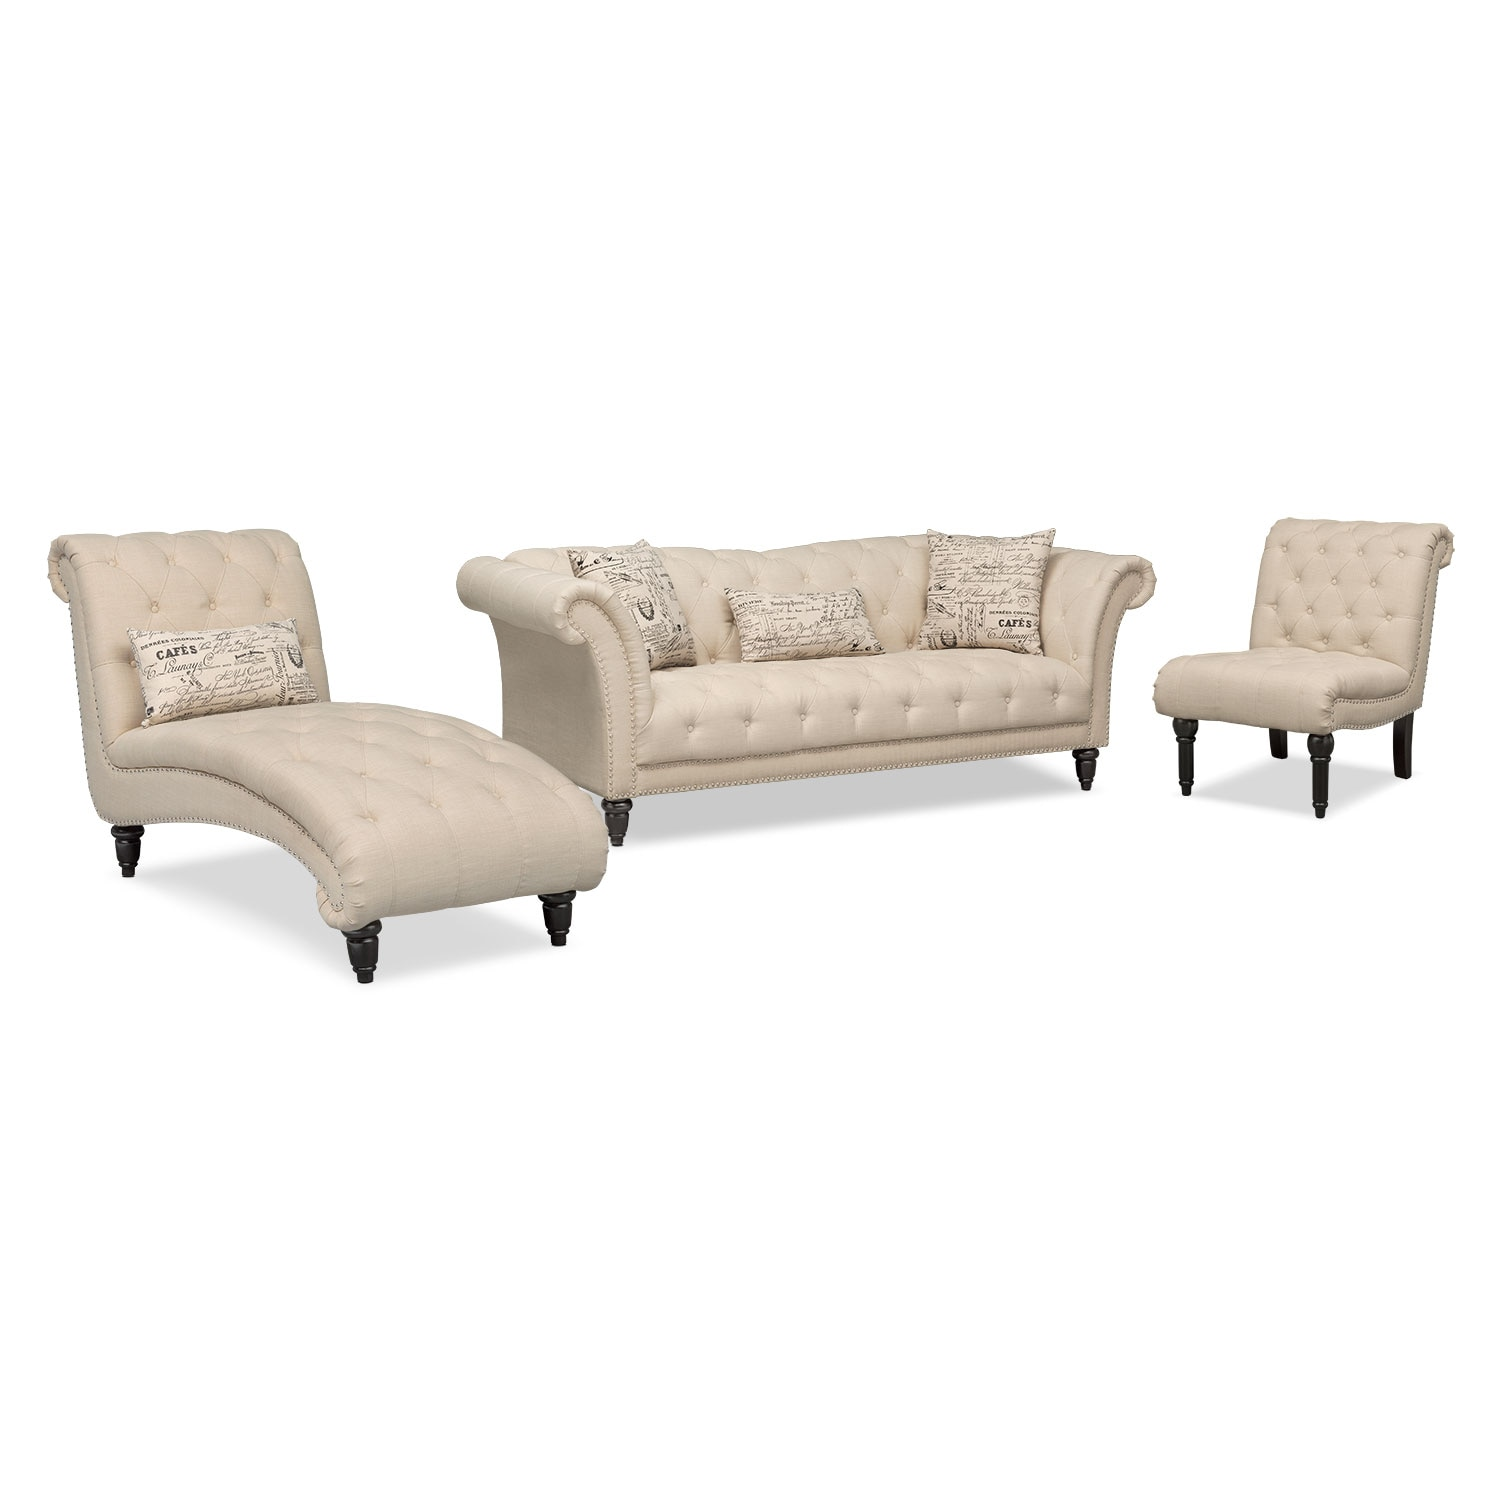 Living Room Furniture - Marisol Sofa, Chaise and Armless Chair